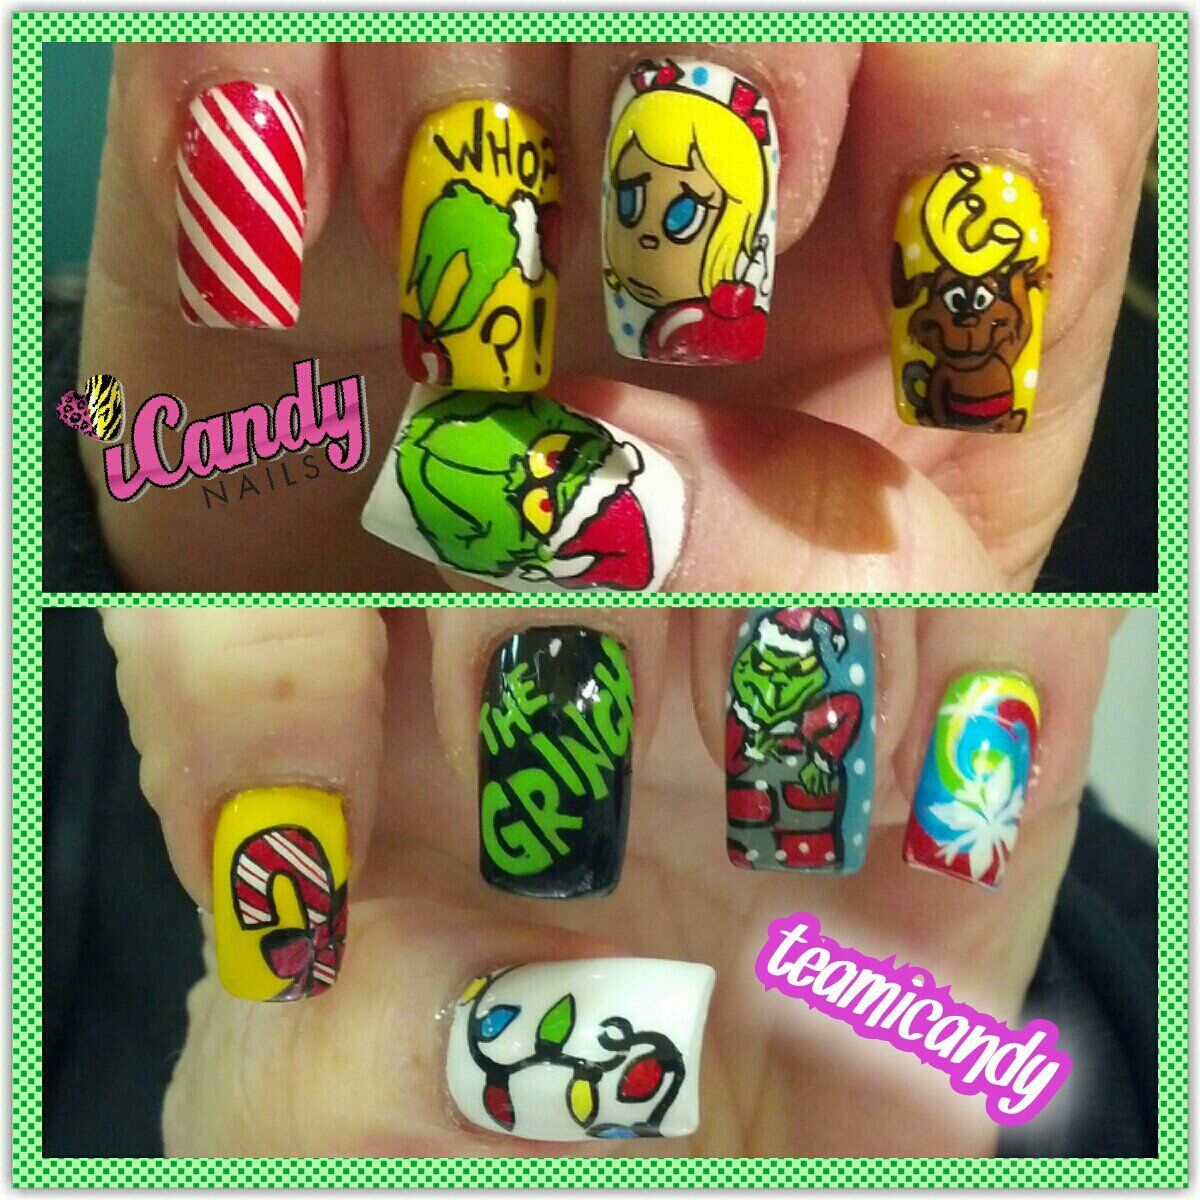 The Grinch who stole Christmas | Nails | Pinterest